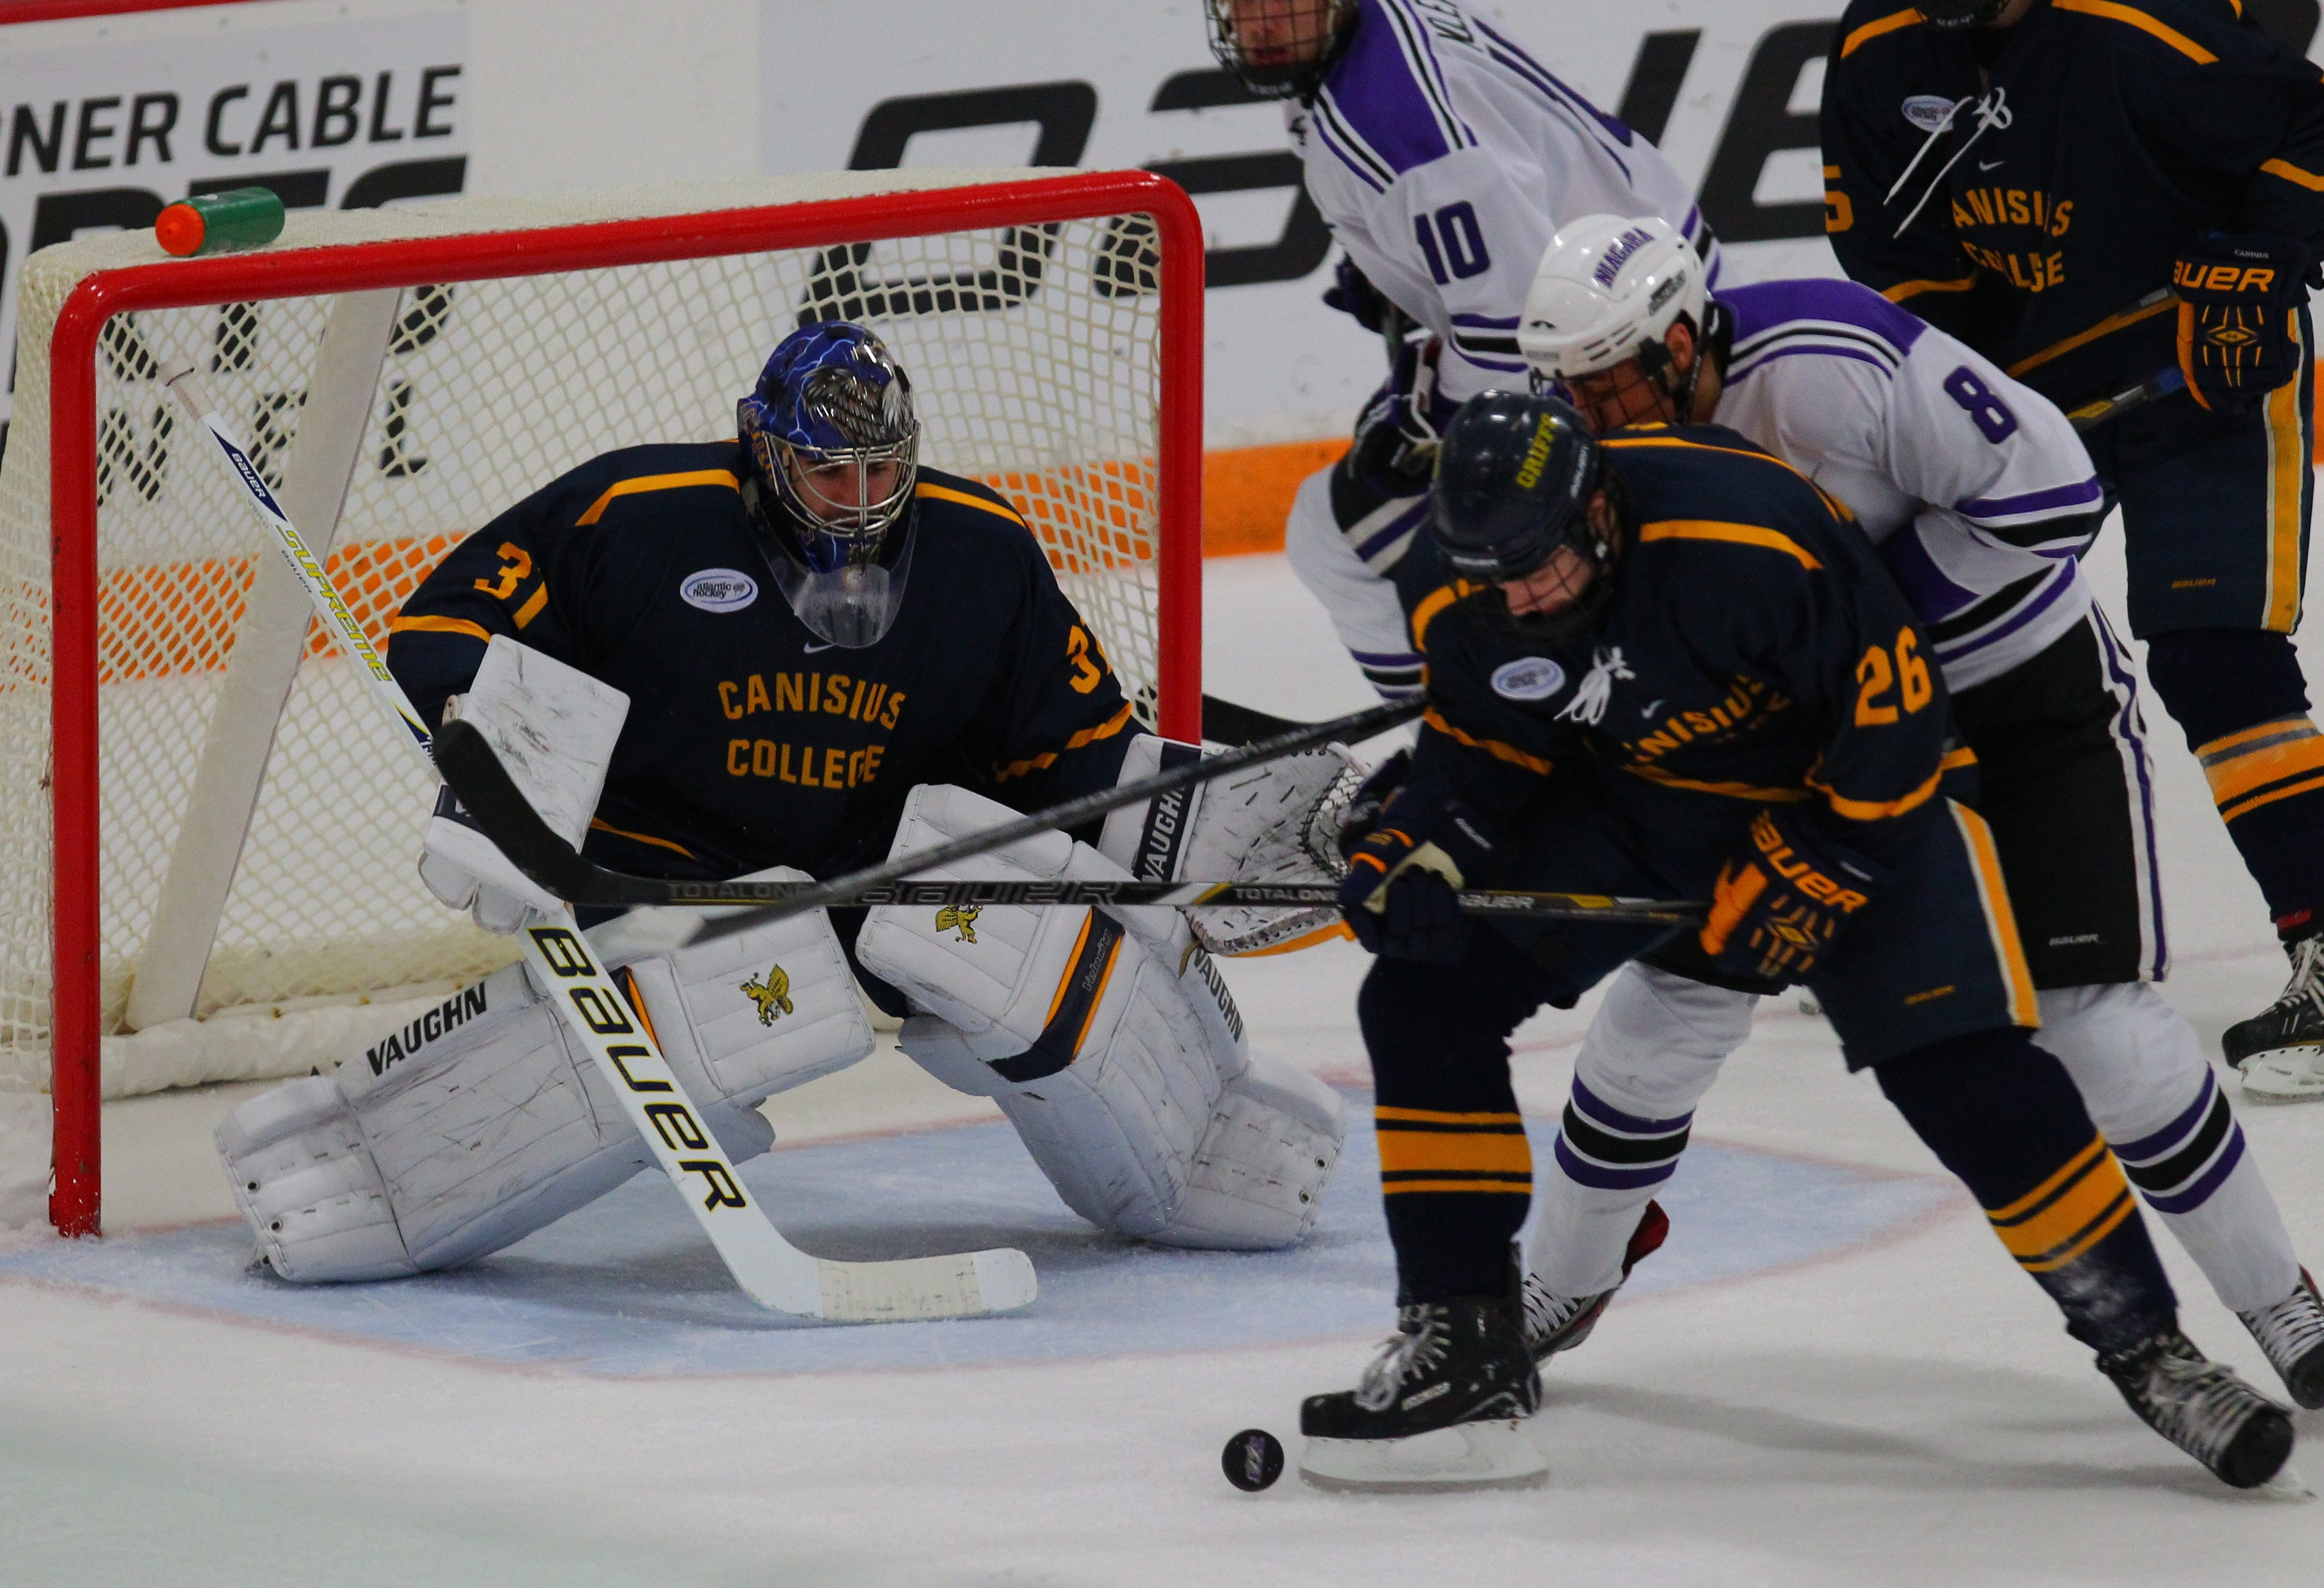 Canisius goalie Tony Capobianco is thrilled he has an opportunity to play professionally now with Elmira of the ECHL, as he has gone from the low of his collegiate career coming to an end to the high of a new beginning as a pro.